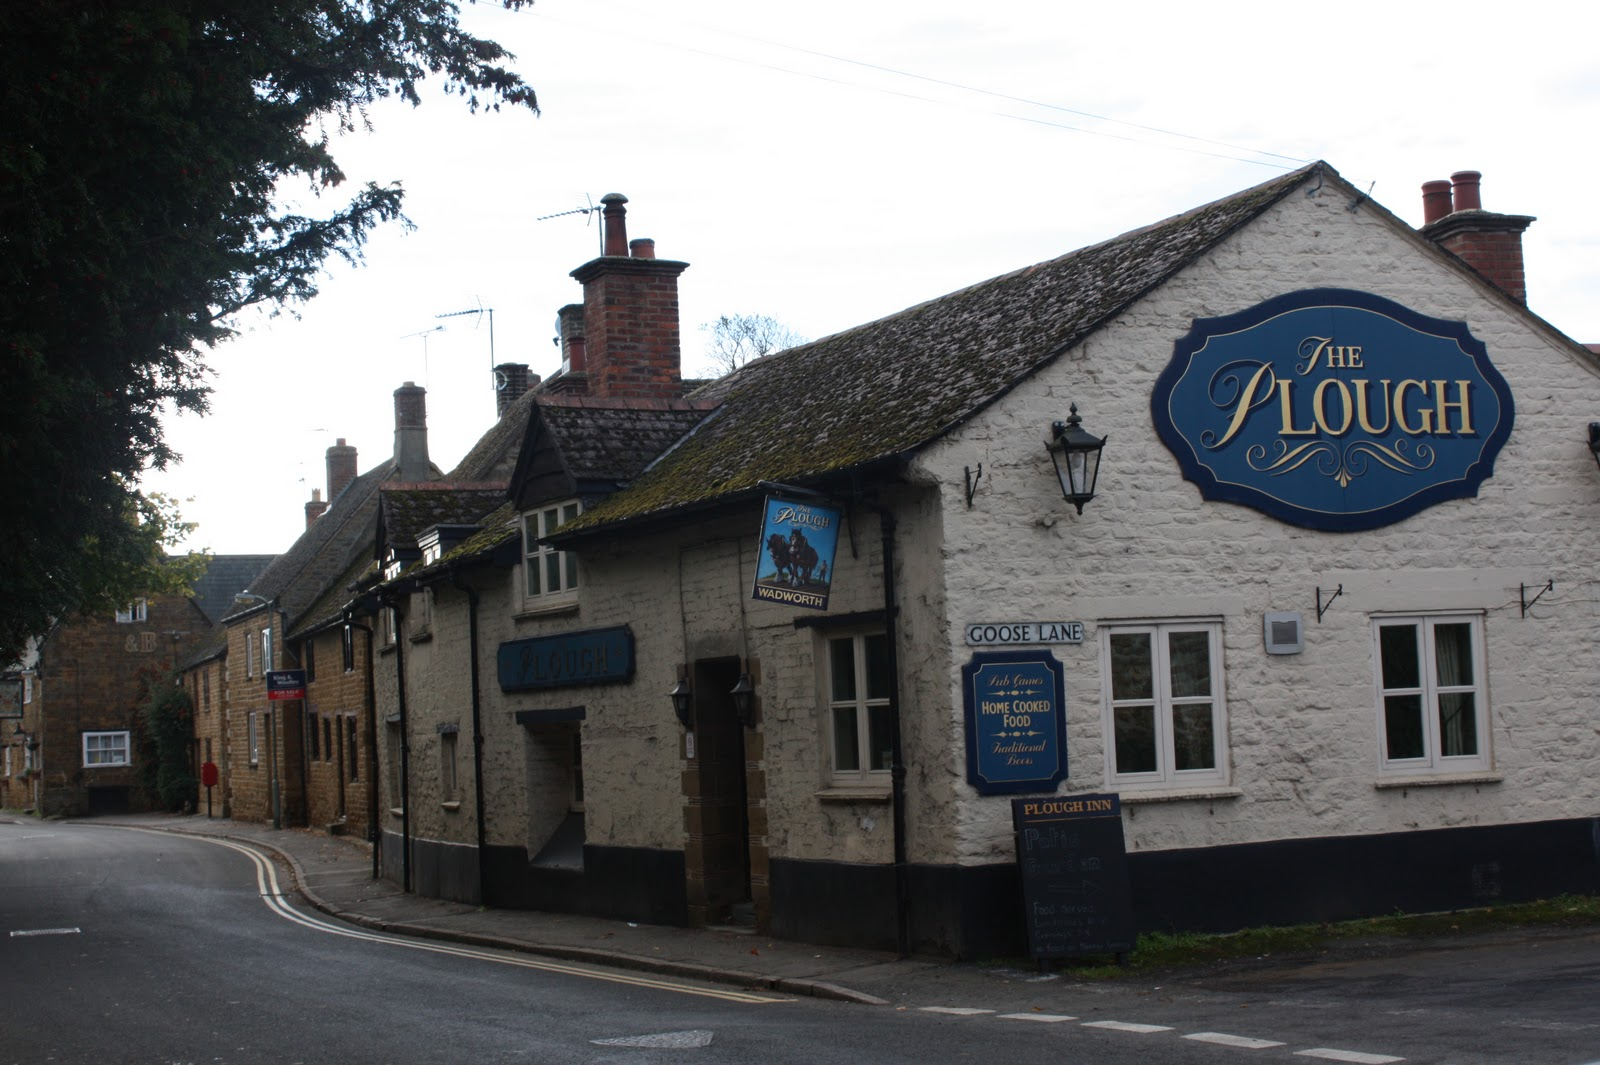 The Plough, Bodicote